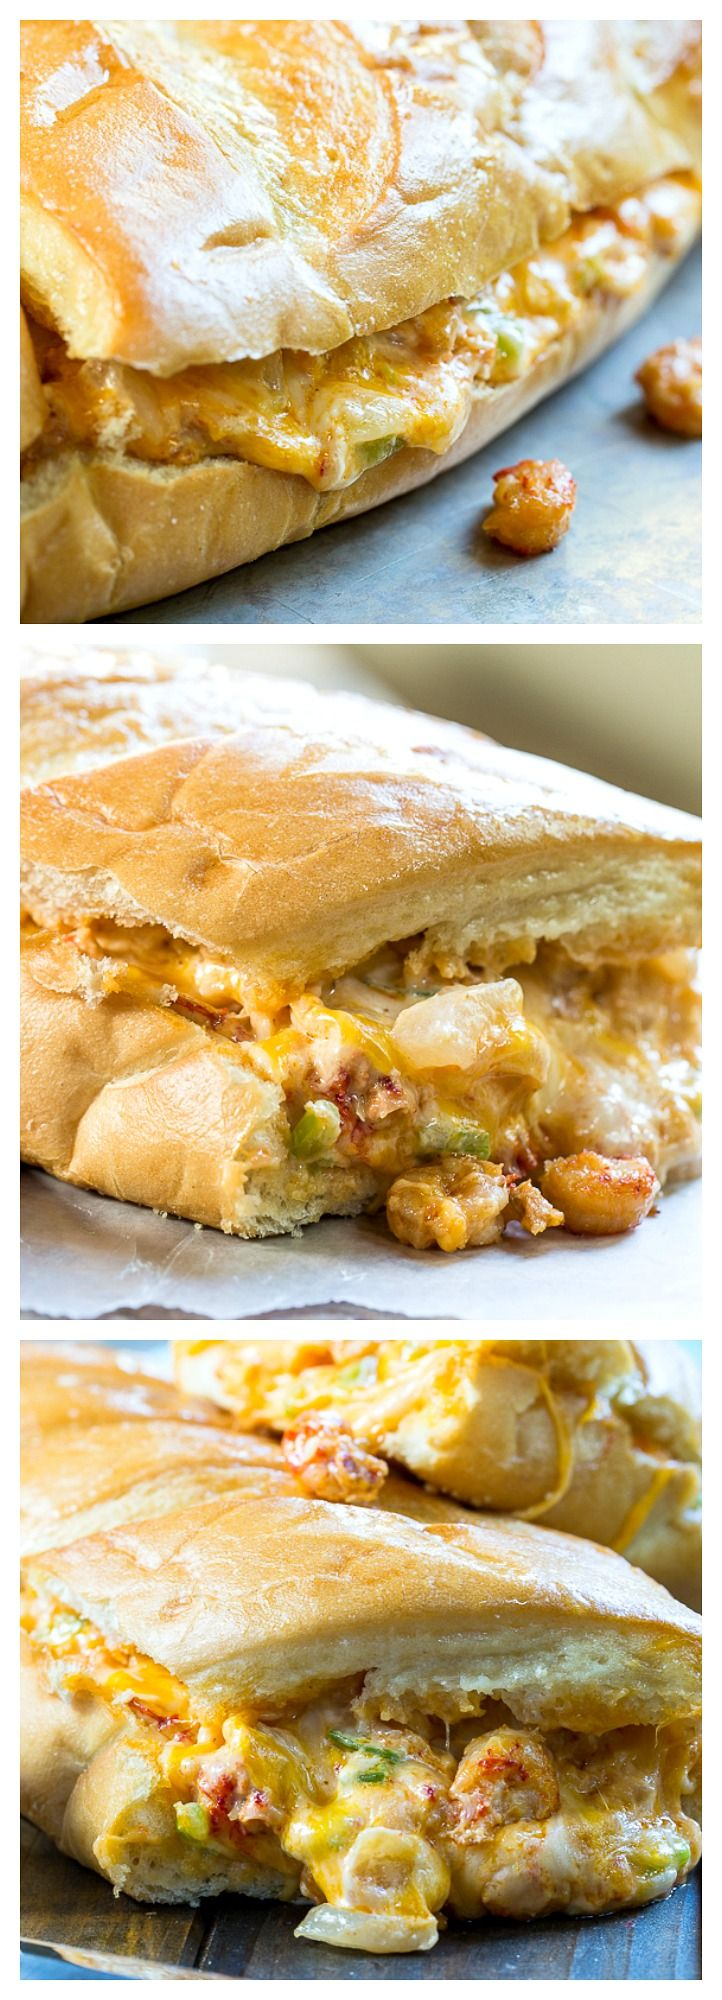 Stuffed Crawfish Bread- French bread stuffed with a hot, gooey, and cheesy crawfish mixture with lots of garlic!